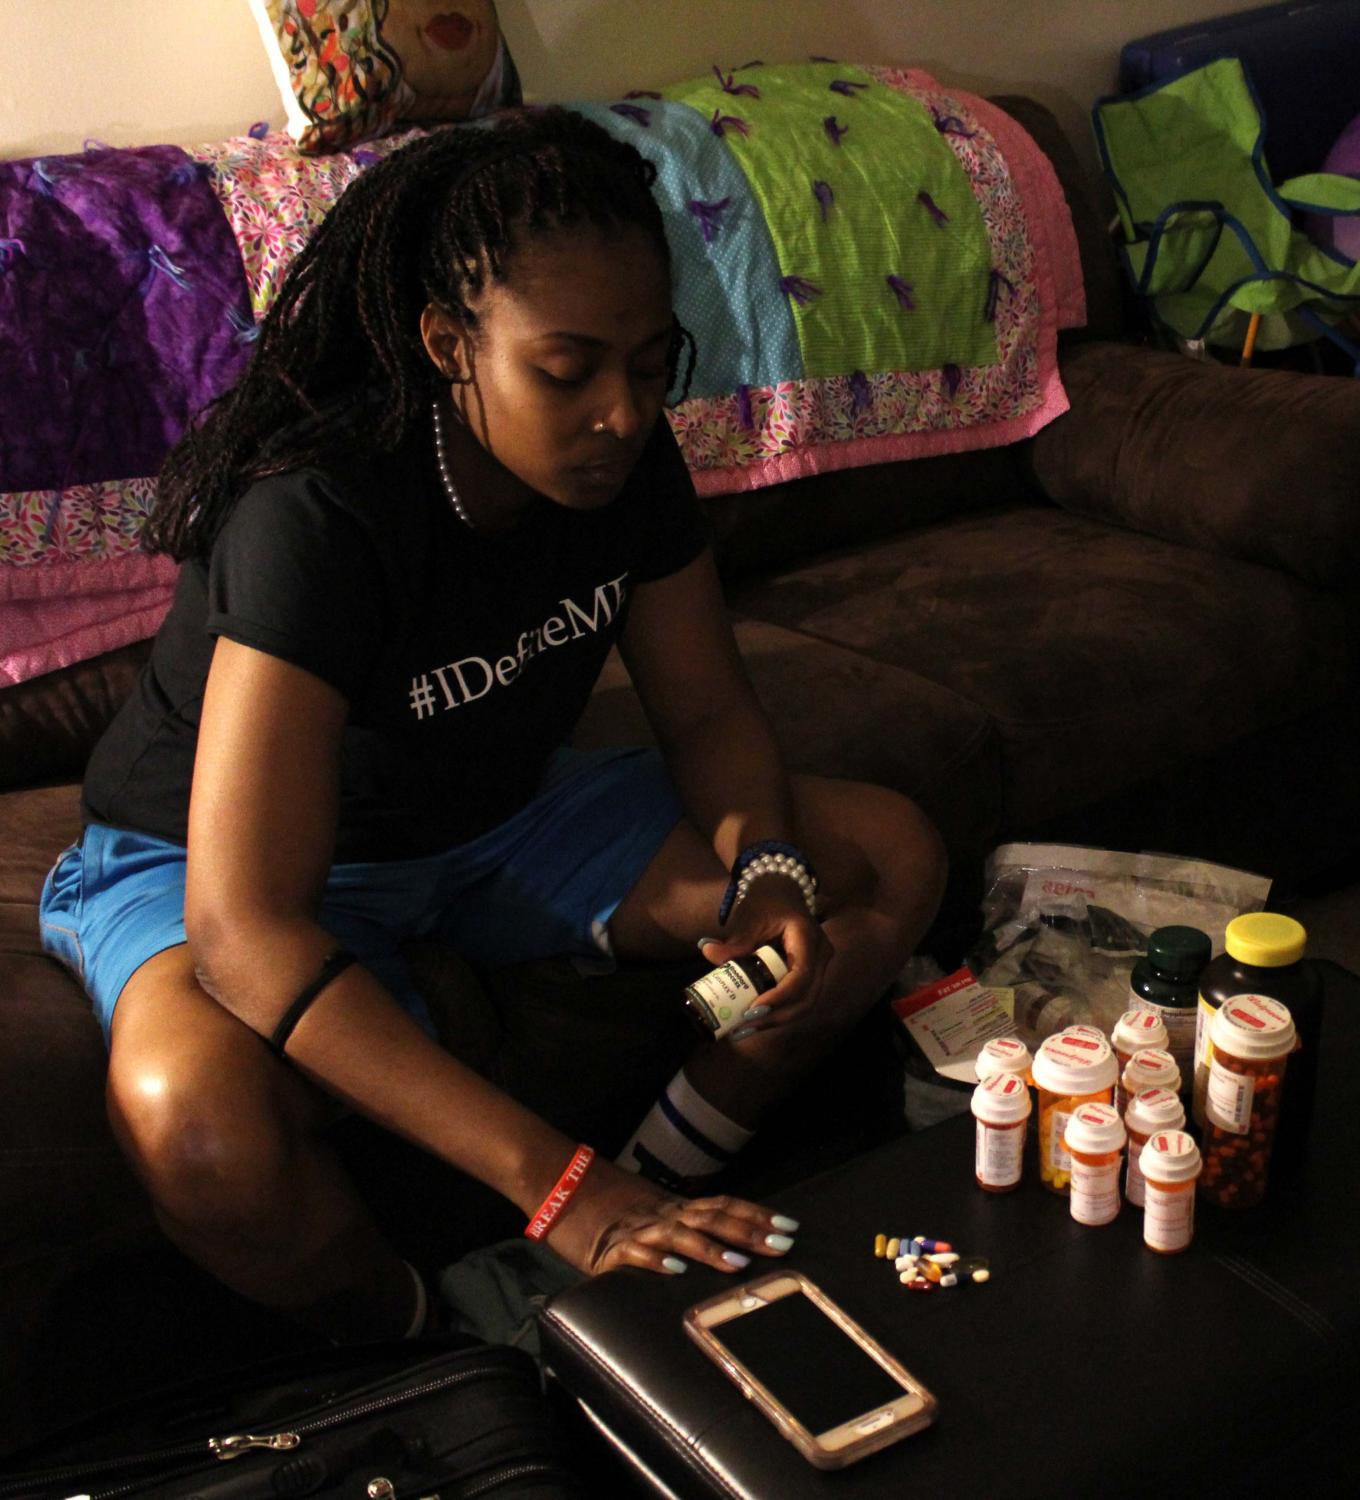 Ronicia Otey, a 28-year-old graduate student at Lincoln University in Jefferson City, Missouri, with Sickle Cell Disease Type SS, lays out her nightly medication on April 7, 2019, at her apartment in Saint Louis. Sickle Cell Type SS is where a person's body produces more sickle-shaped red blood cells than regular ones, causing chronic pain. As part of her treatment, Otey had to take 22 different pills before going to bed every night, not including the ones for pain management.